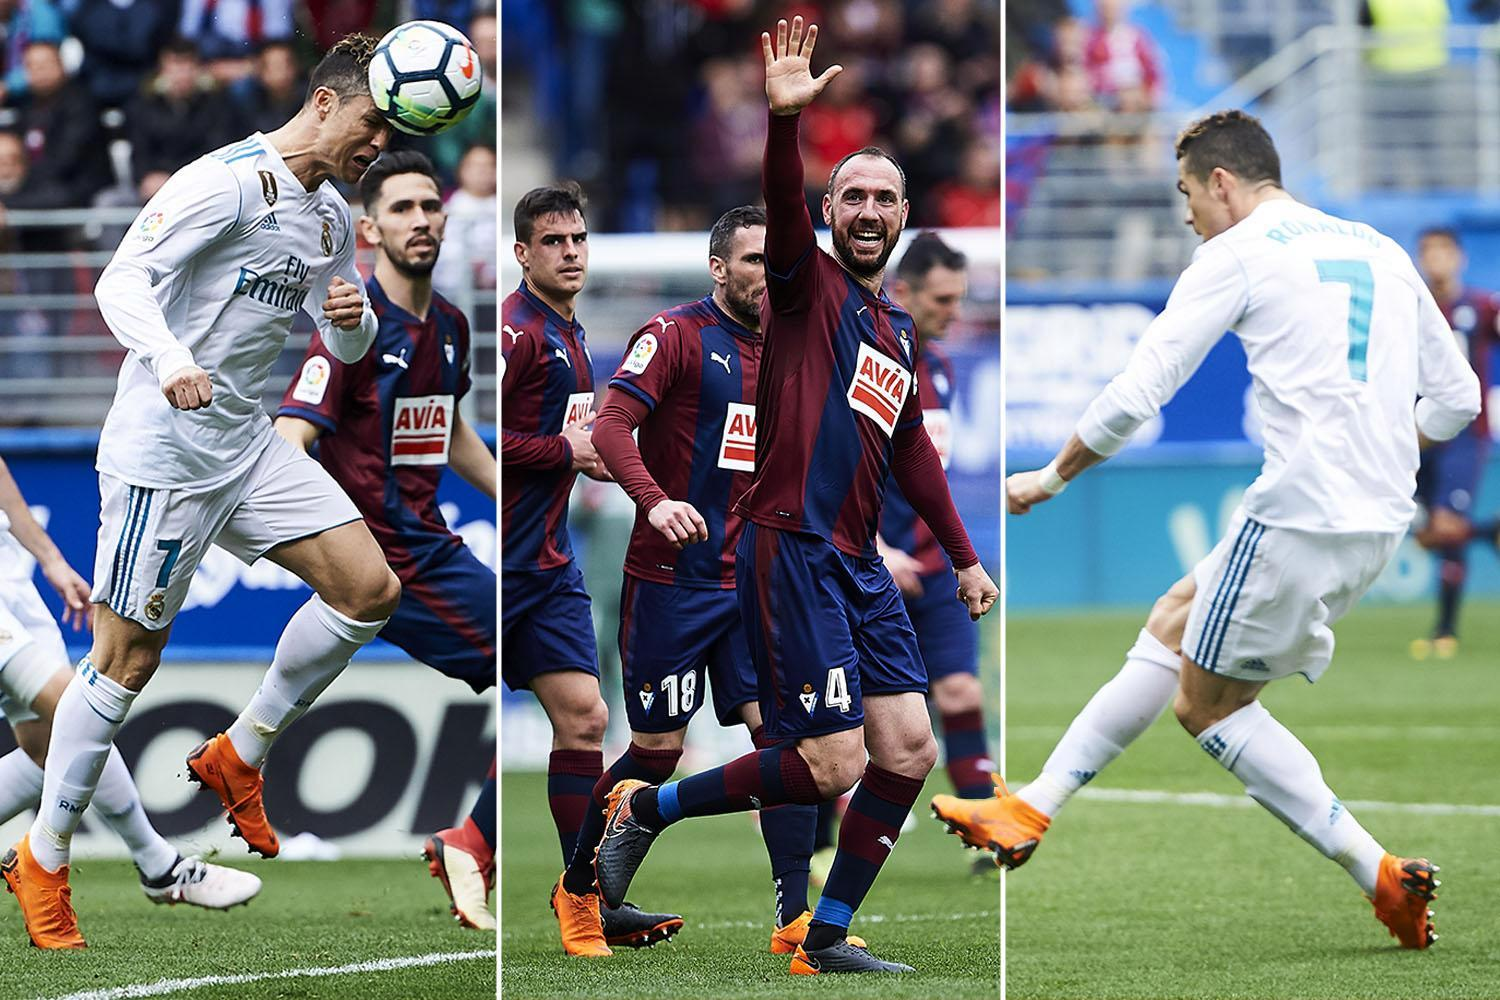 Eibar 1 Real Madrid 2: Cristiano Ronaldo at the double to secure three points for Los Blancos